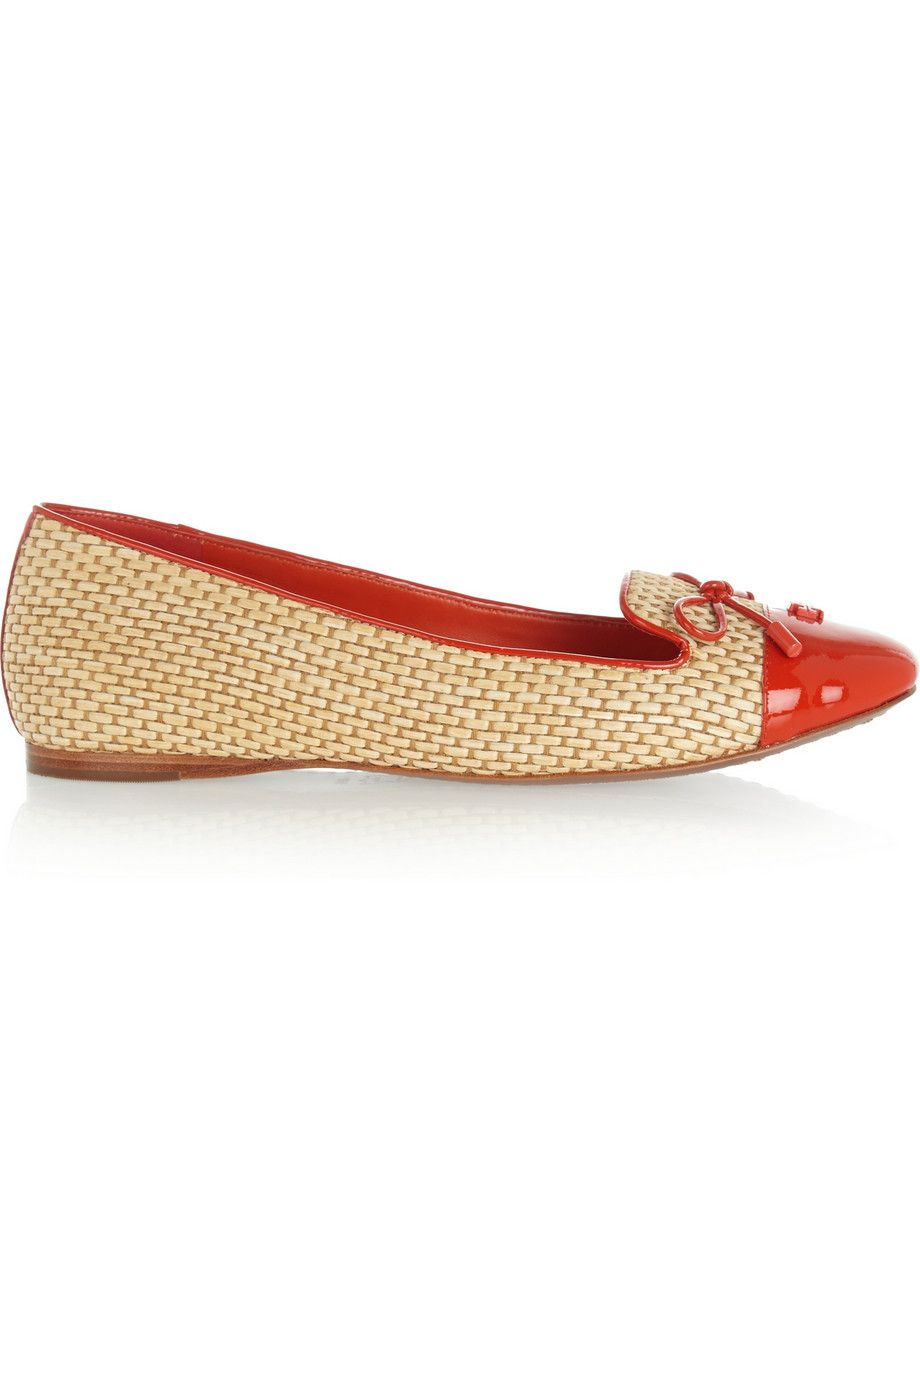 83aadbc7929 TORY BURCH Catherine Patent Leather-Trimmed Raffia Ballet Flats.  toryburch   shoes  flats